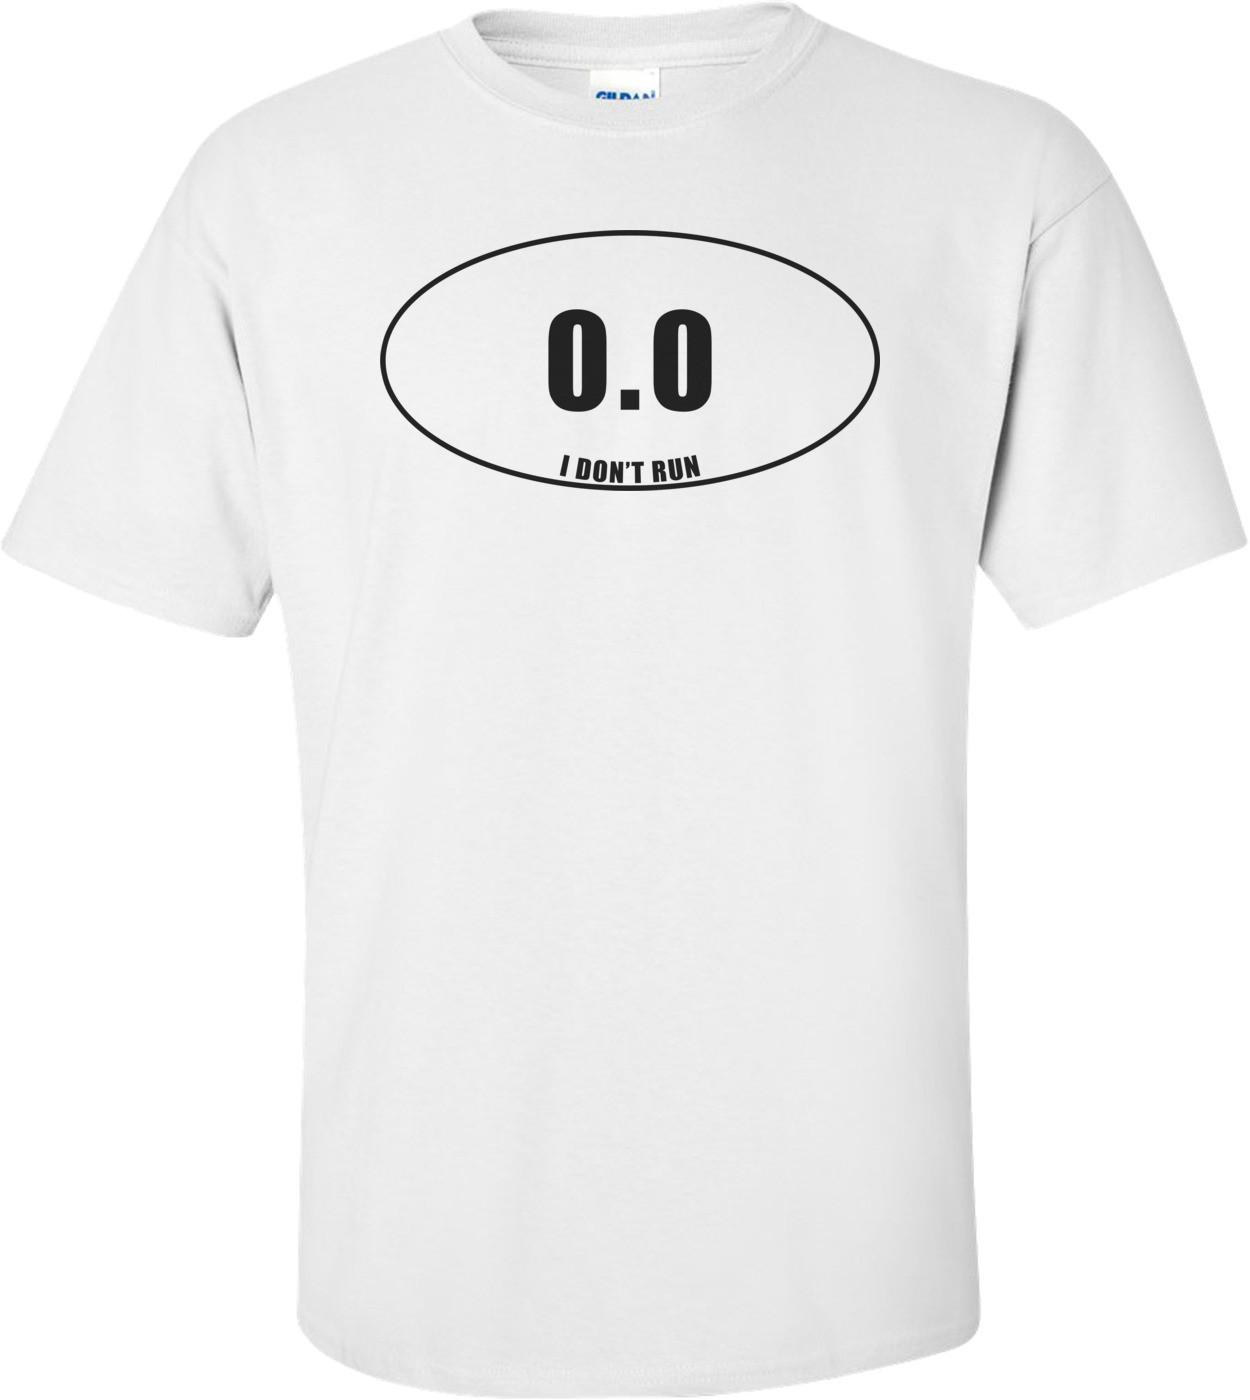 0.0 I Don't Run Funny Shirt